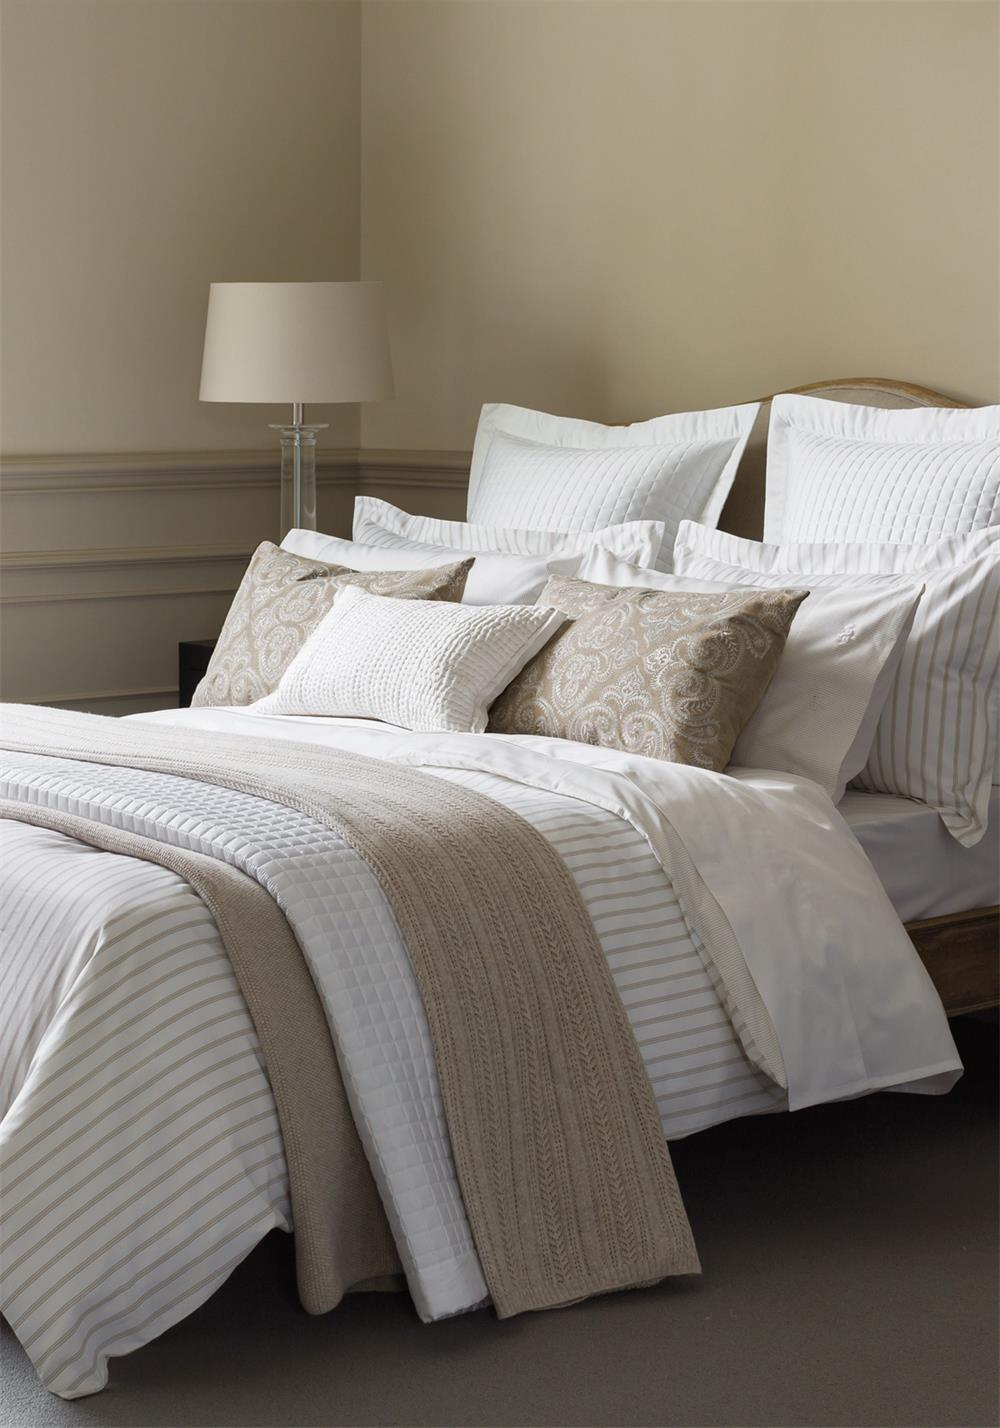 Fable Ellis Stripe Duvet Cover, Linen